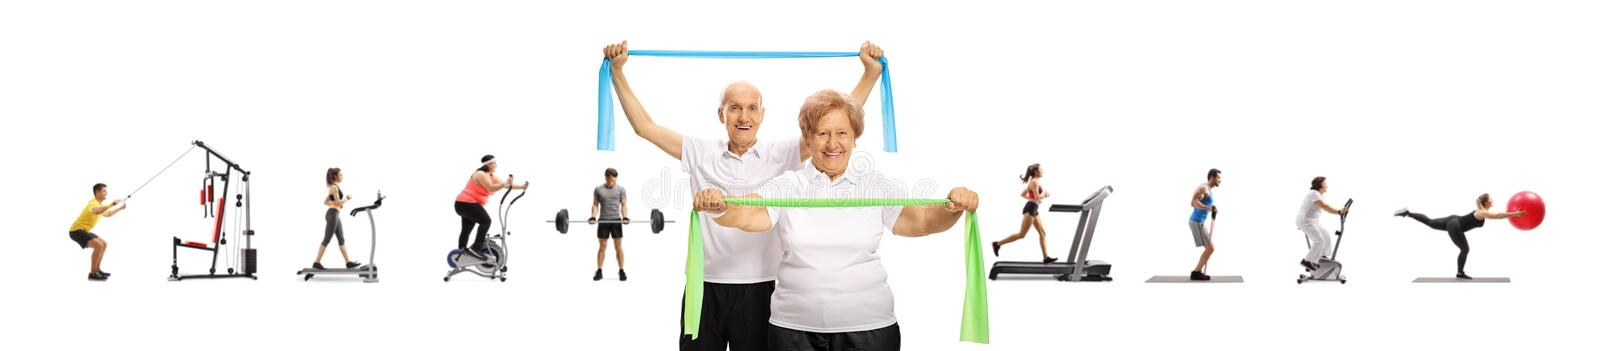 Senior man and woman with ellastic bands and many people exercising behind. Senior men and women with ellastic bands and many people exercising behind isolated stock image